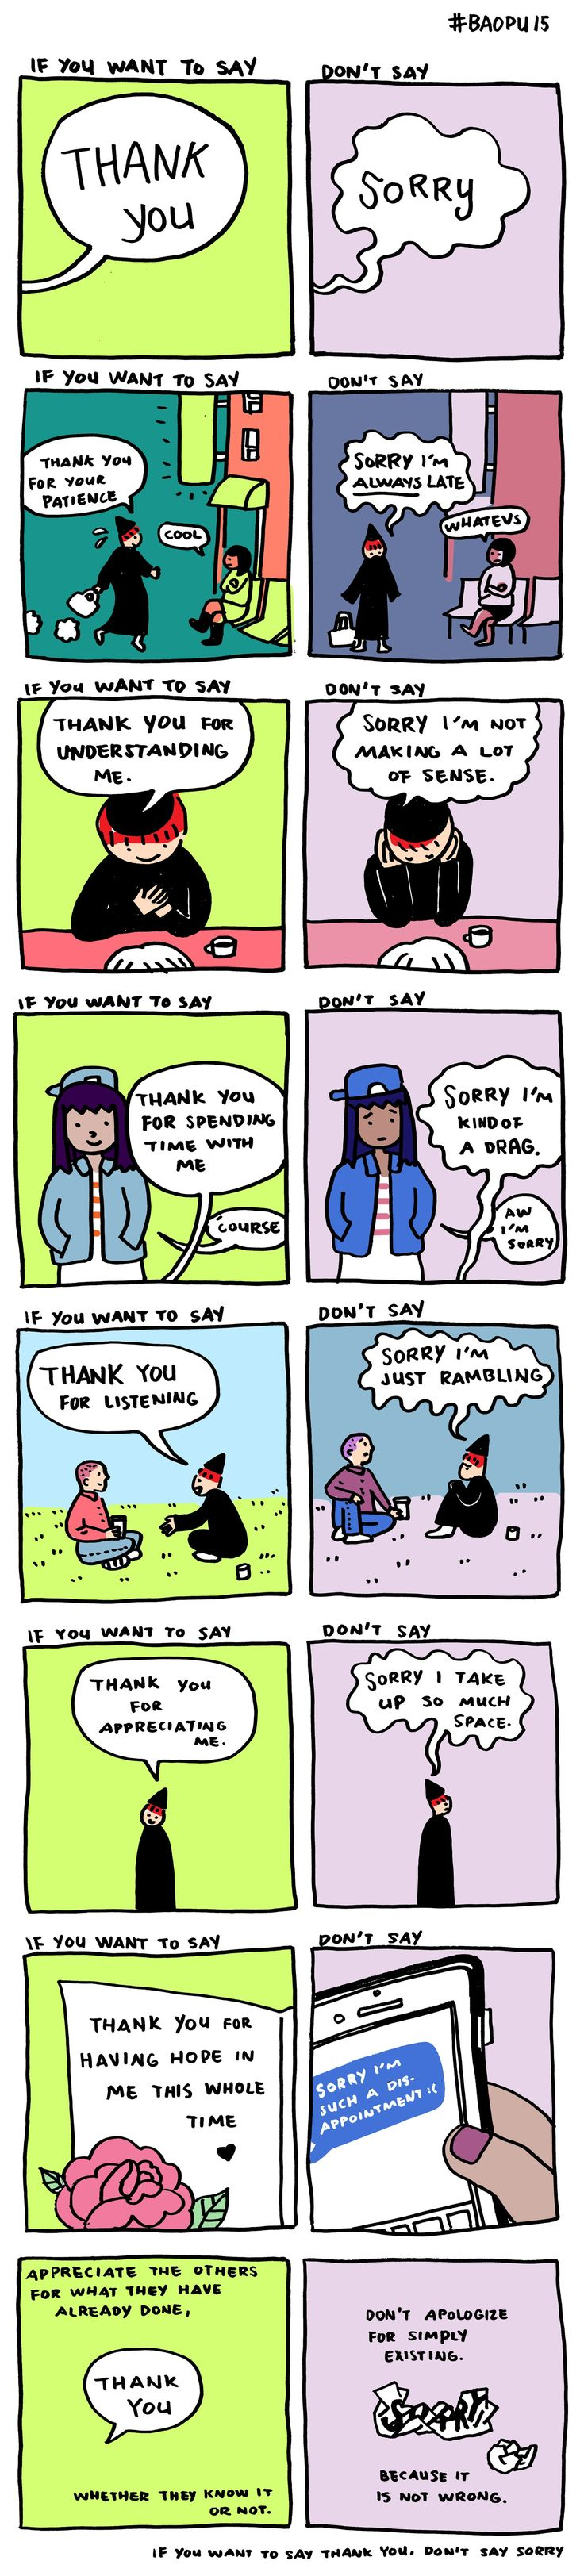 sorry, not sorry http://www.upworthy.com/an-8-part-comic-for-people-who-say-im-sorry-too-often?c=ufb7